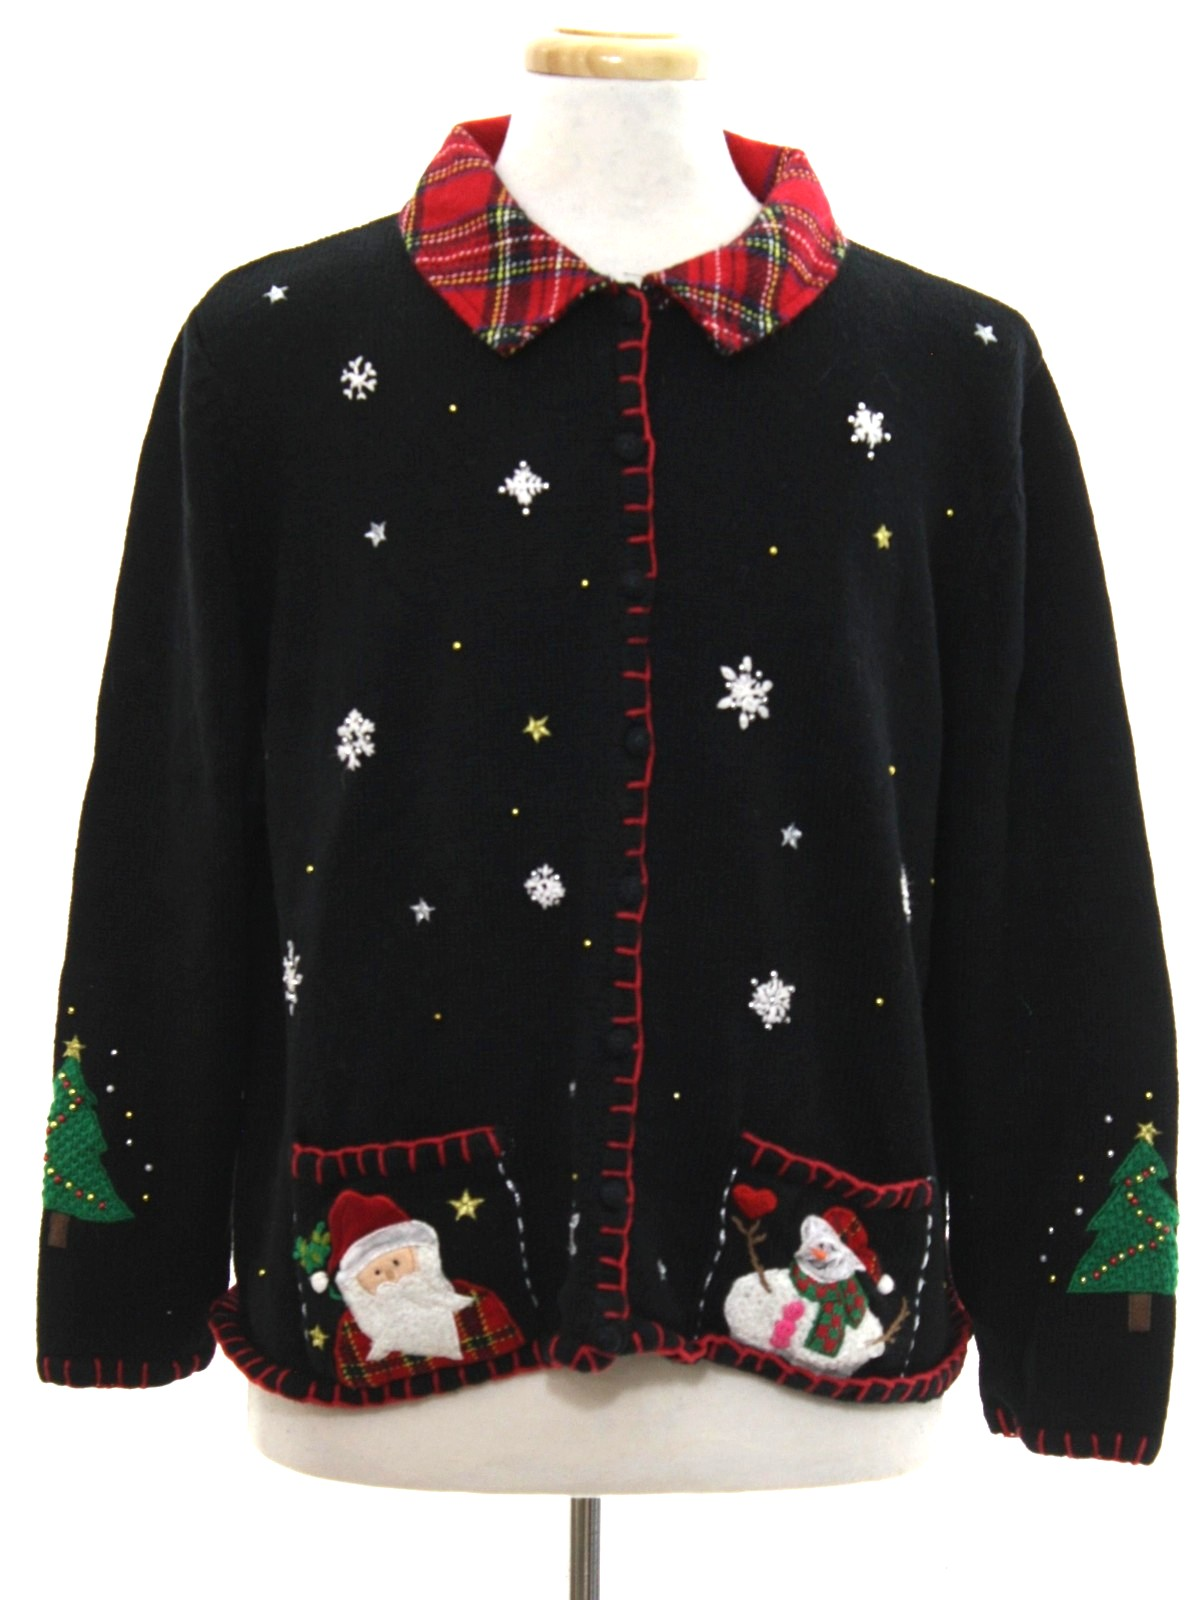 Ugly christmas sweater designer originals studio unisex for Over the top ugly christmas sweaters